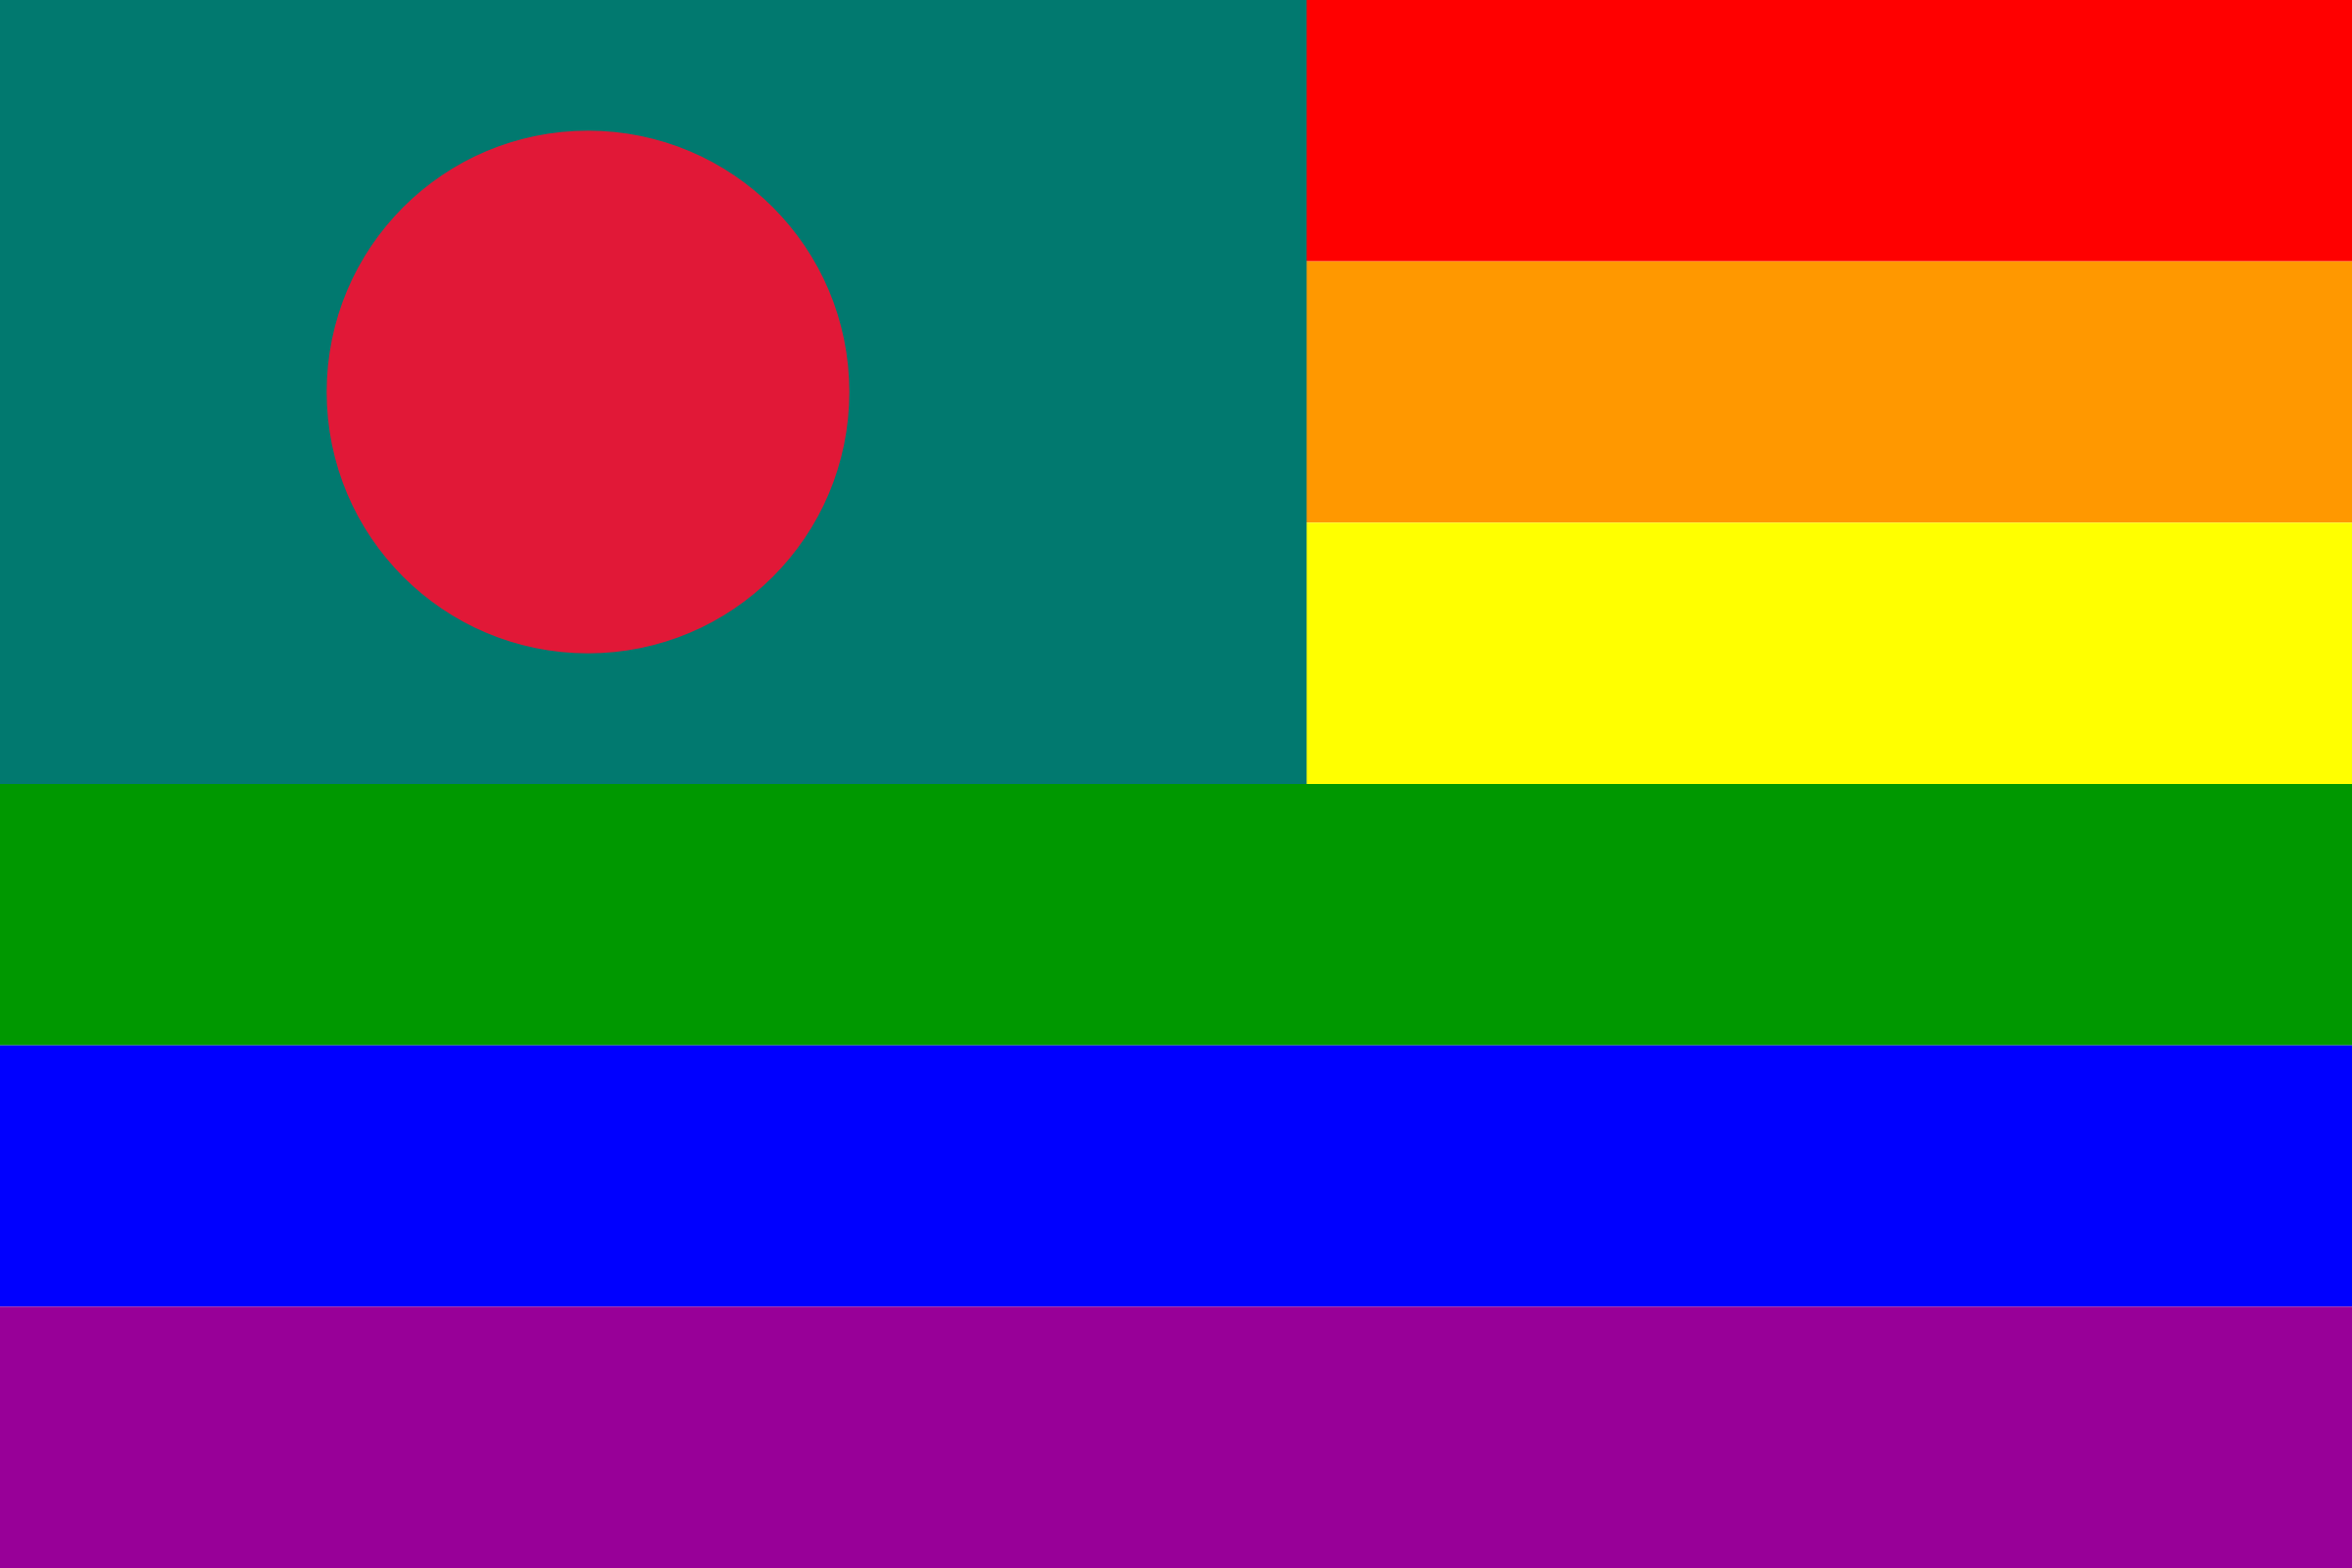 The Bangladesh Rainbow Flag by AdamStanislav